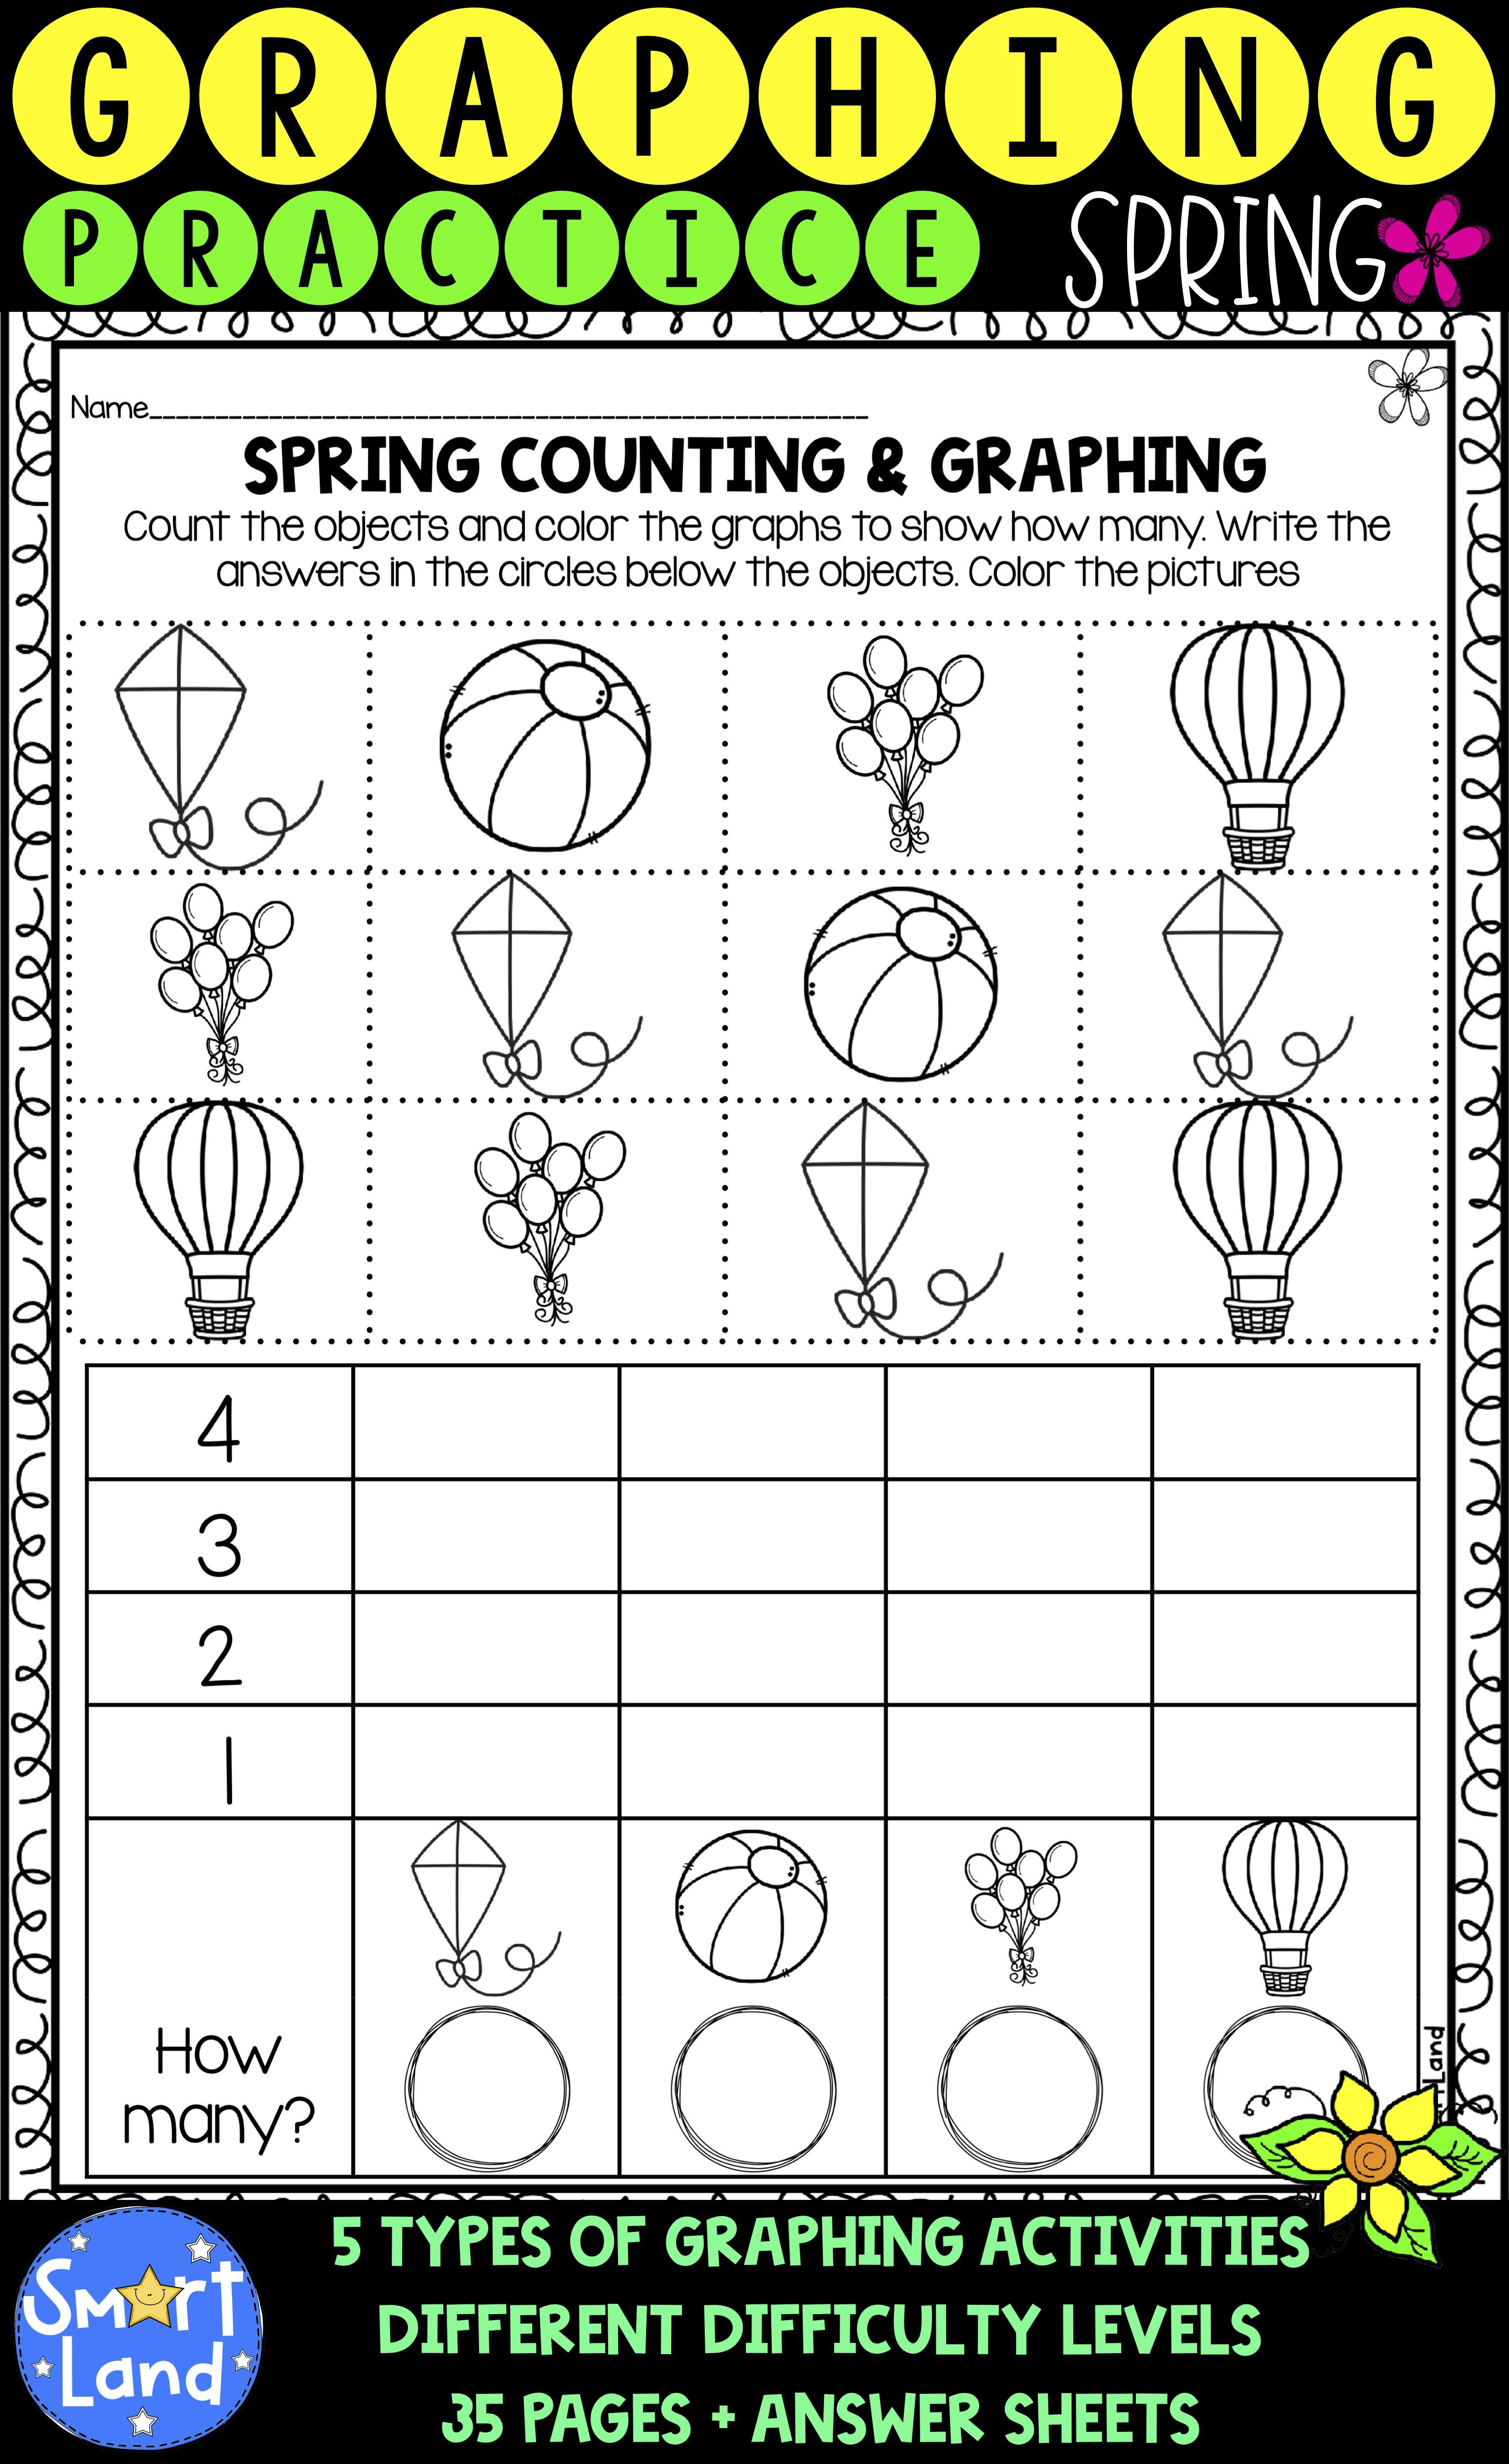 Graphing And Counting Practice Spring Edition Graphing Activities Graphing Teaching Energy [ 5000 x 3062 Pixel ]